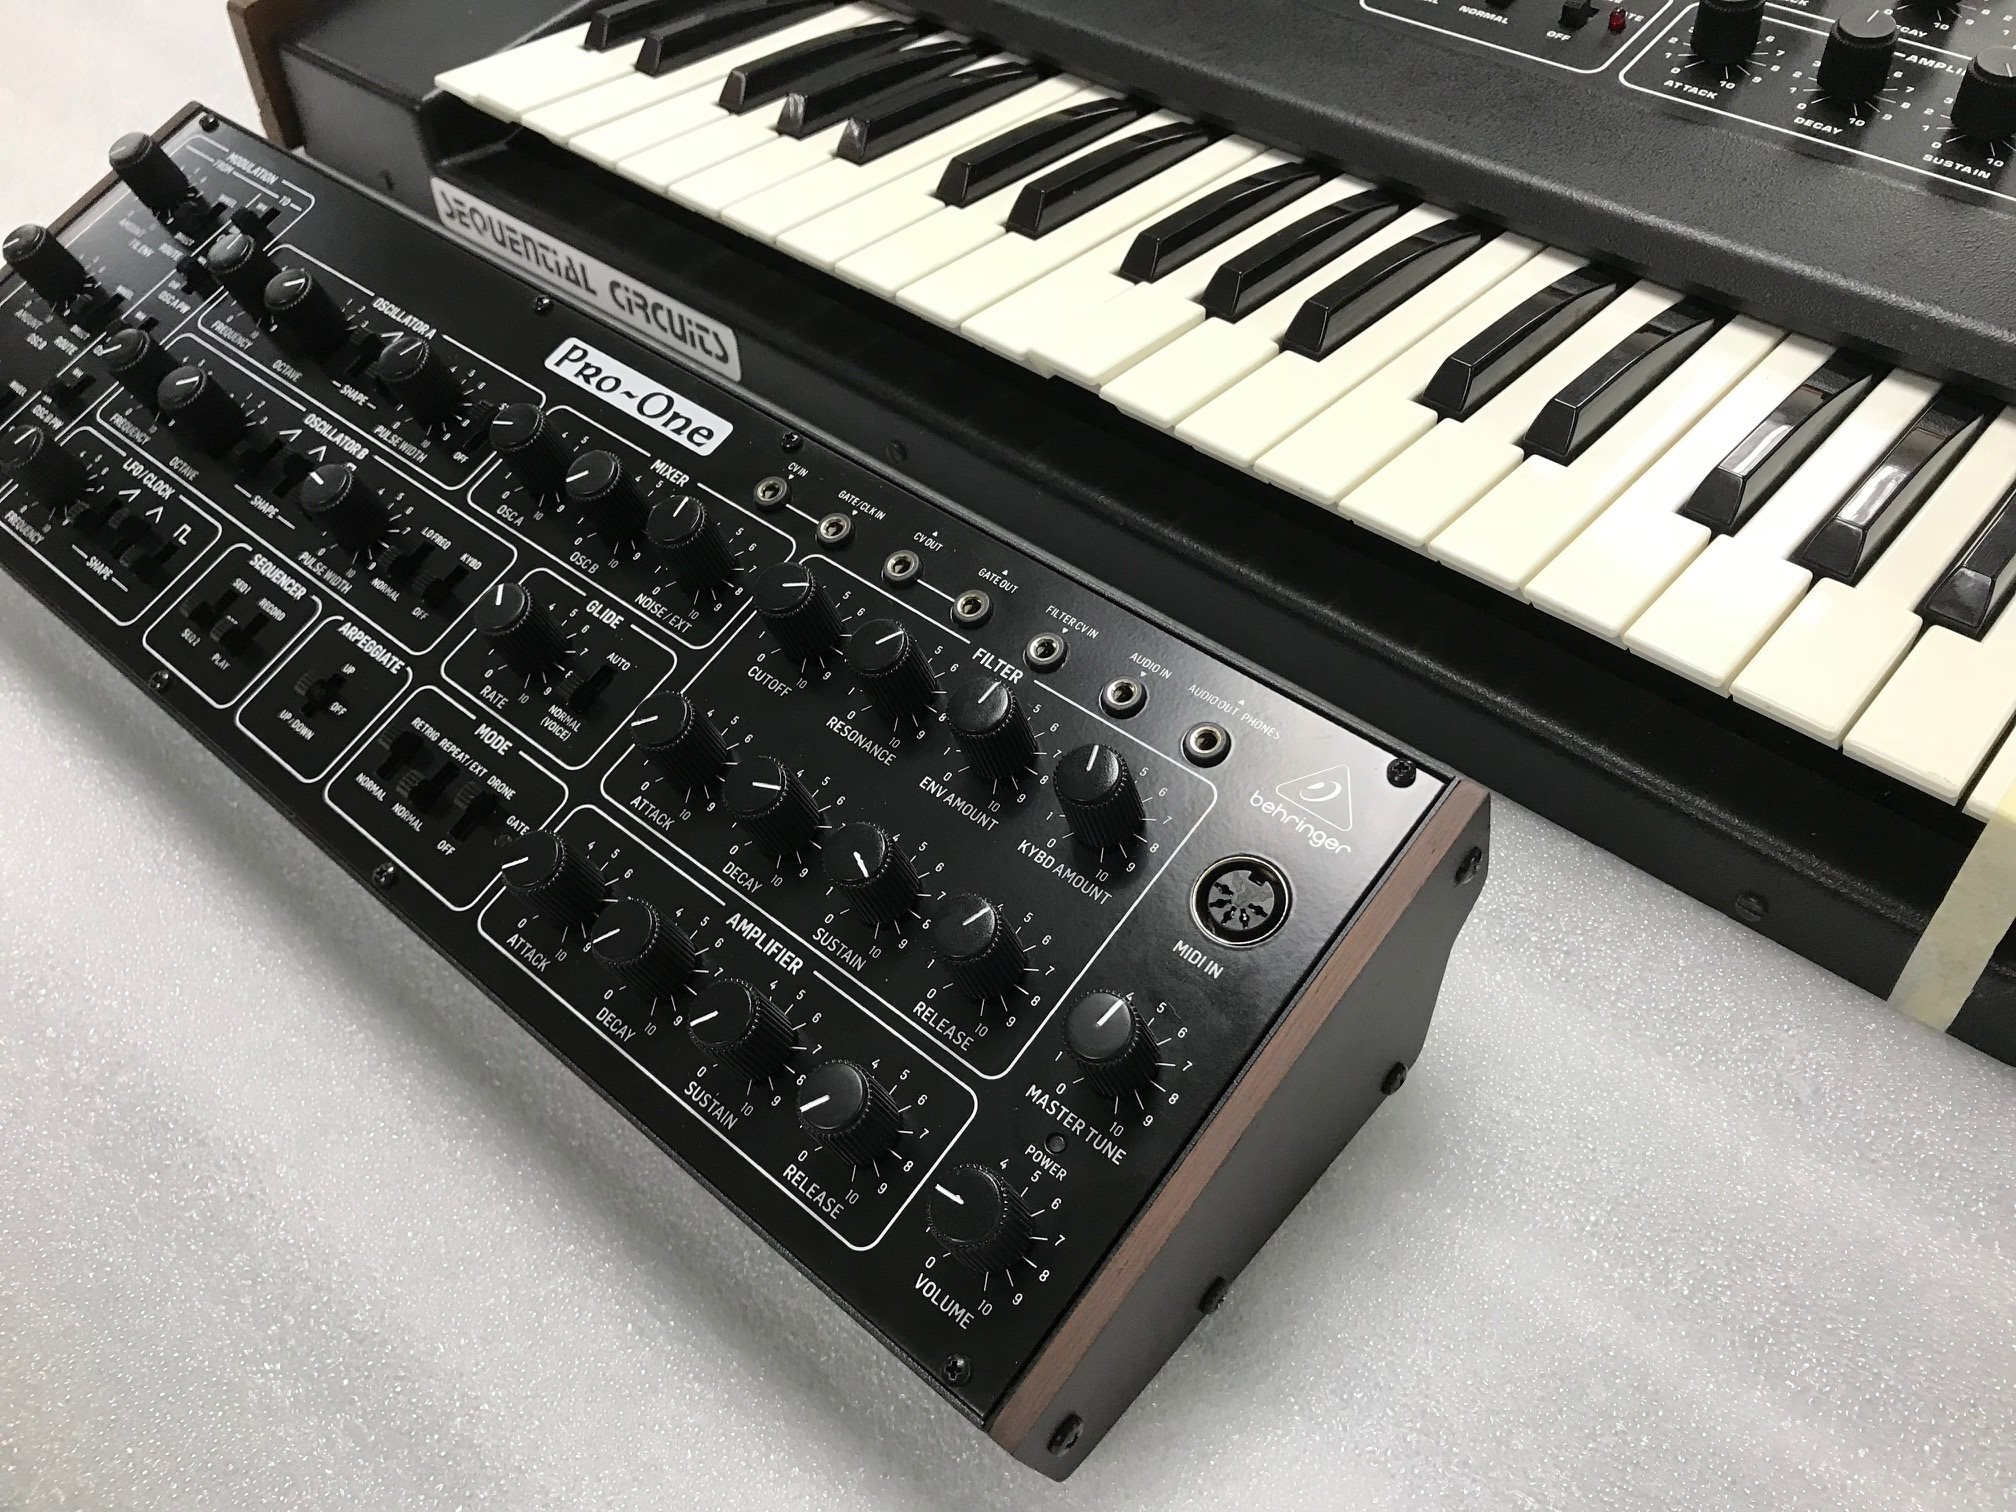 behringer clone le synth u00e9tiseur analogique sequential circuits pro